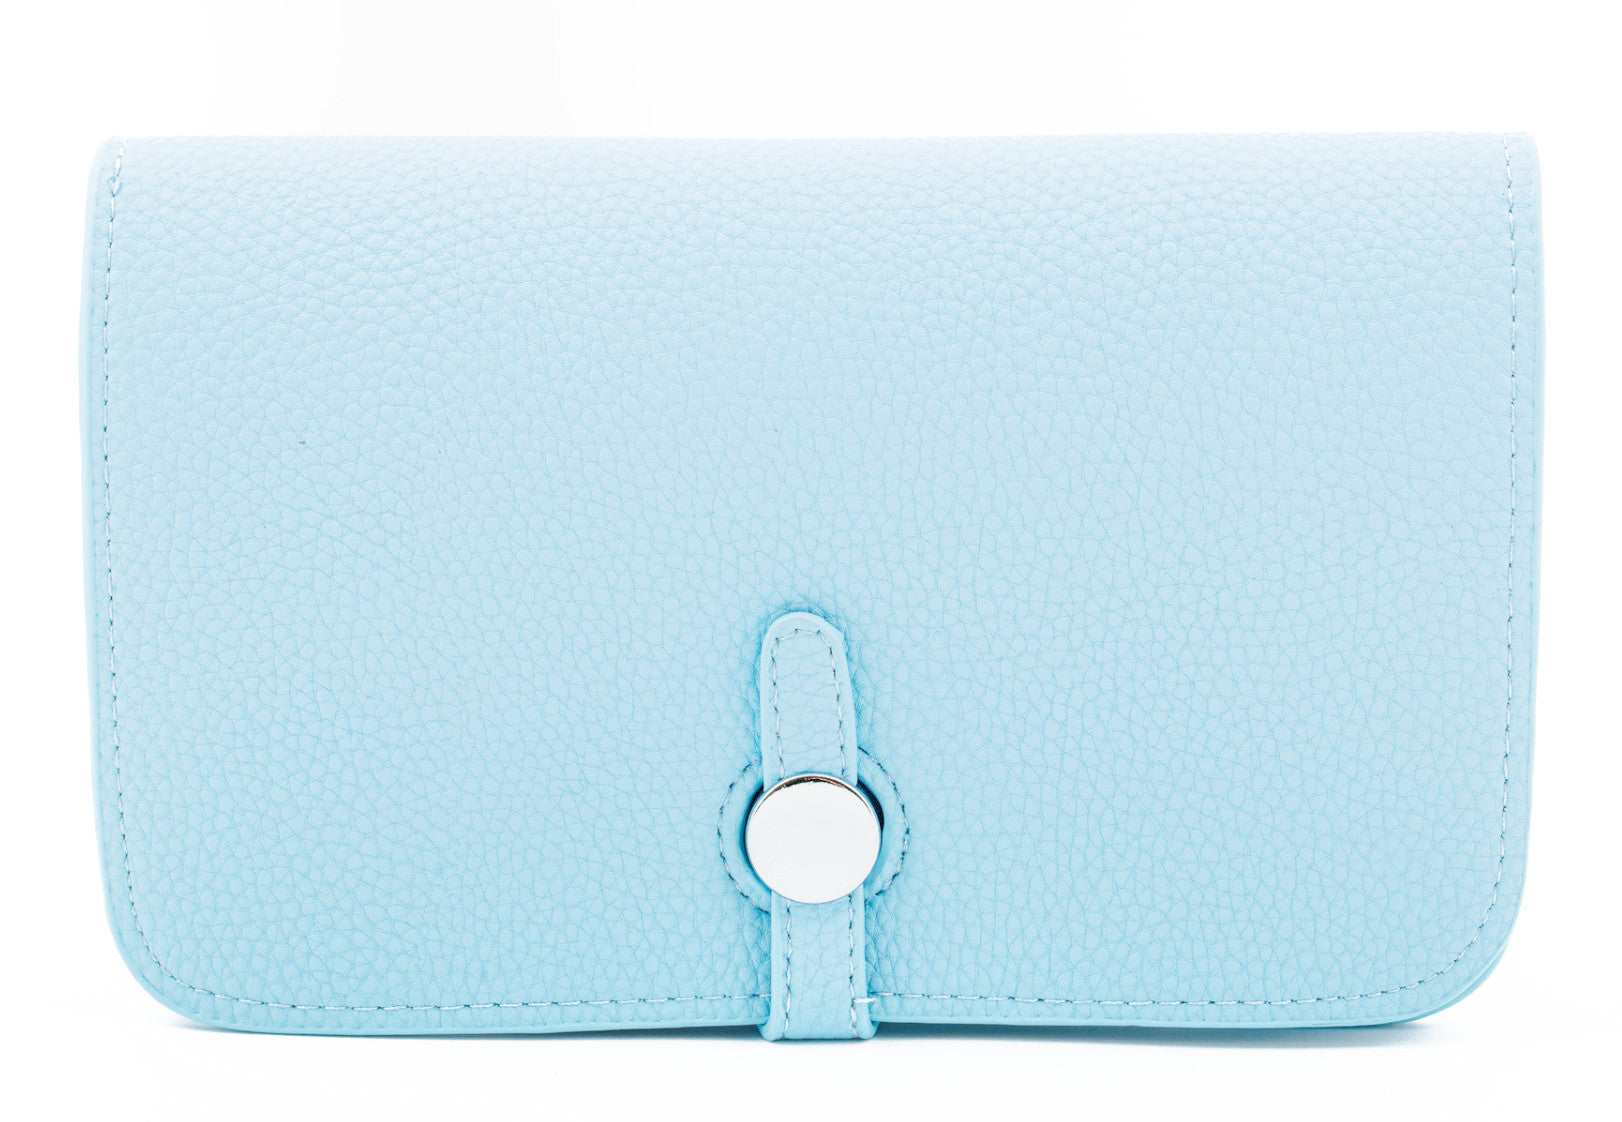 The Elizabeth - baby blue - m-use